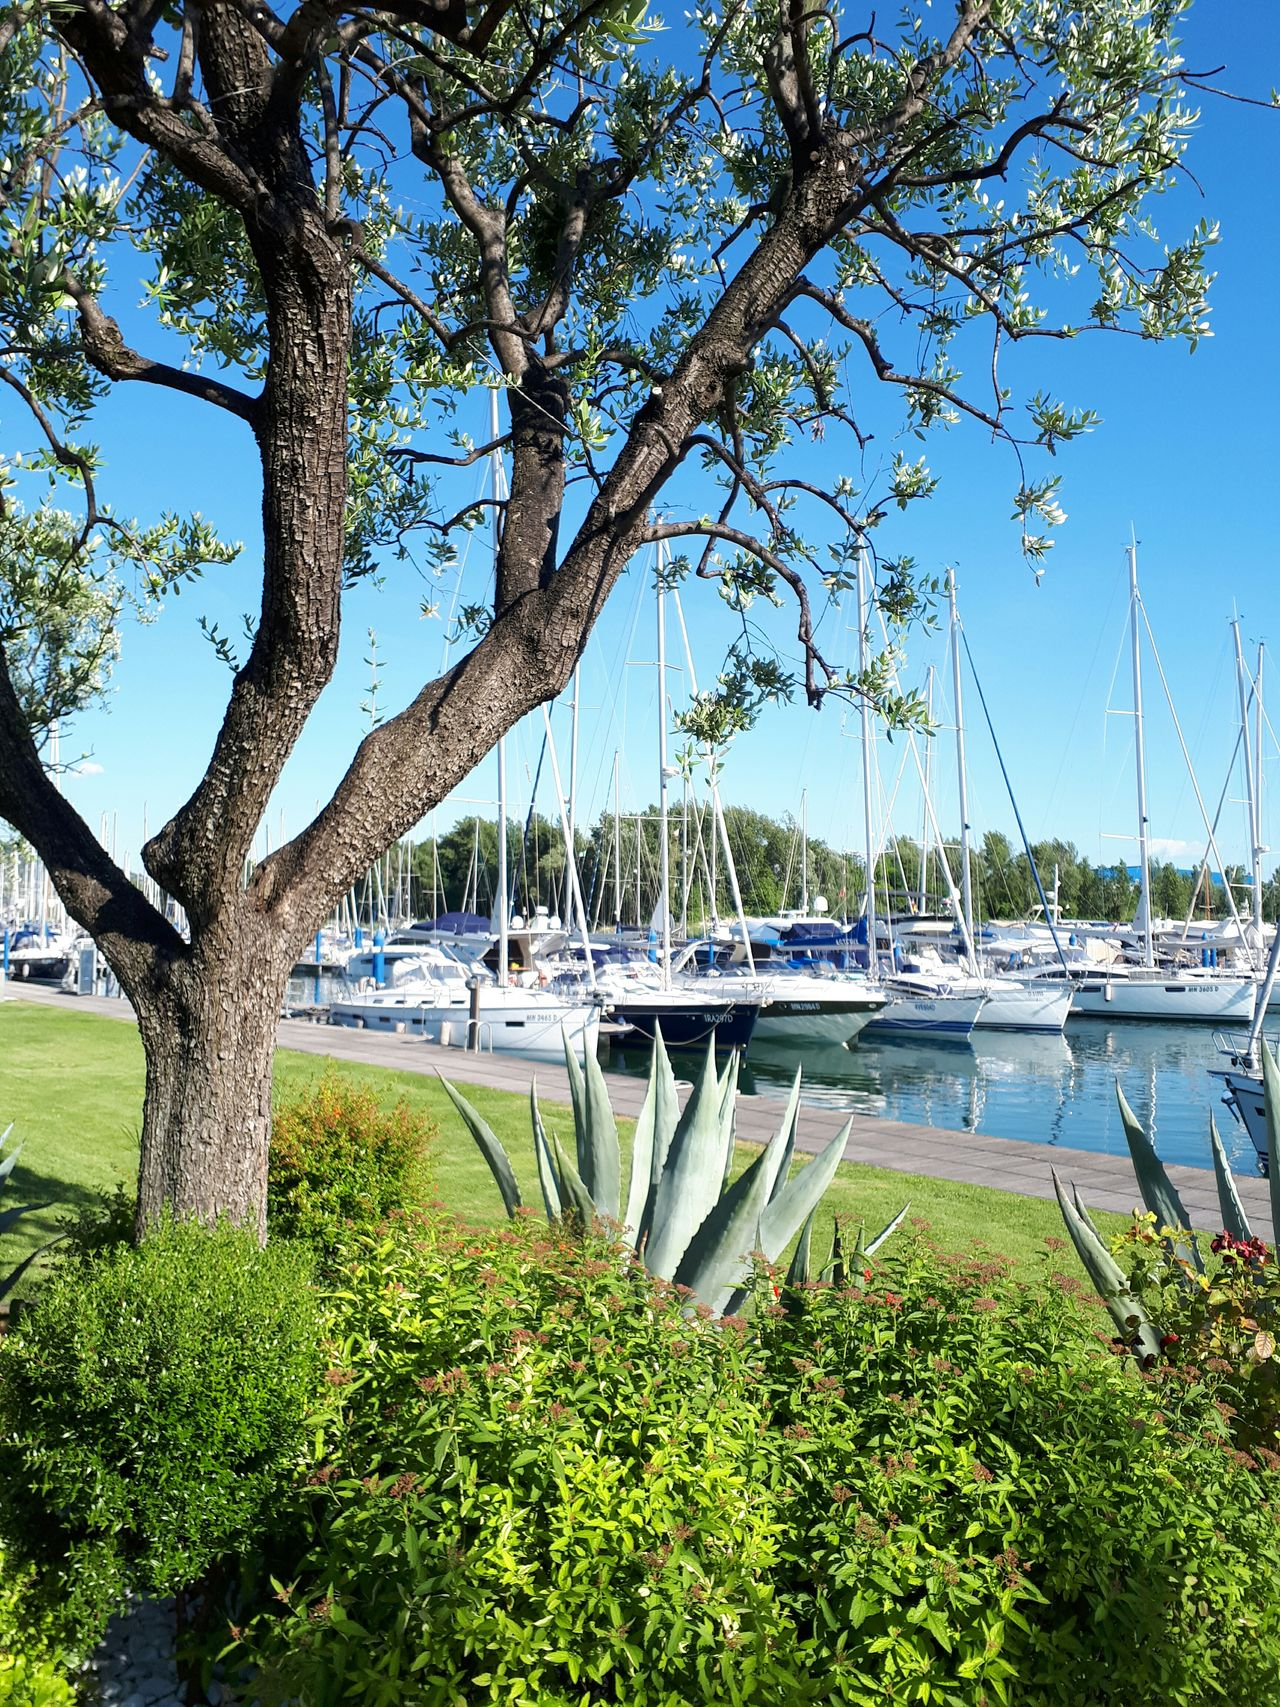 Tree Water Growth Outdoors Nautical Vessel Day Green Color Nature Plant No People Sky Nautic Club Harbor Grass Beauty In Nature Flower